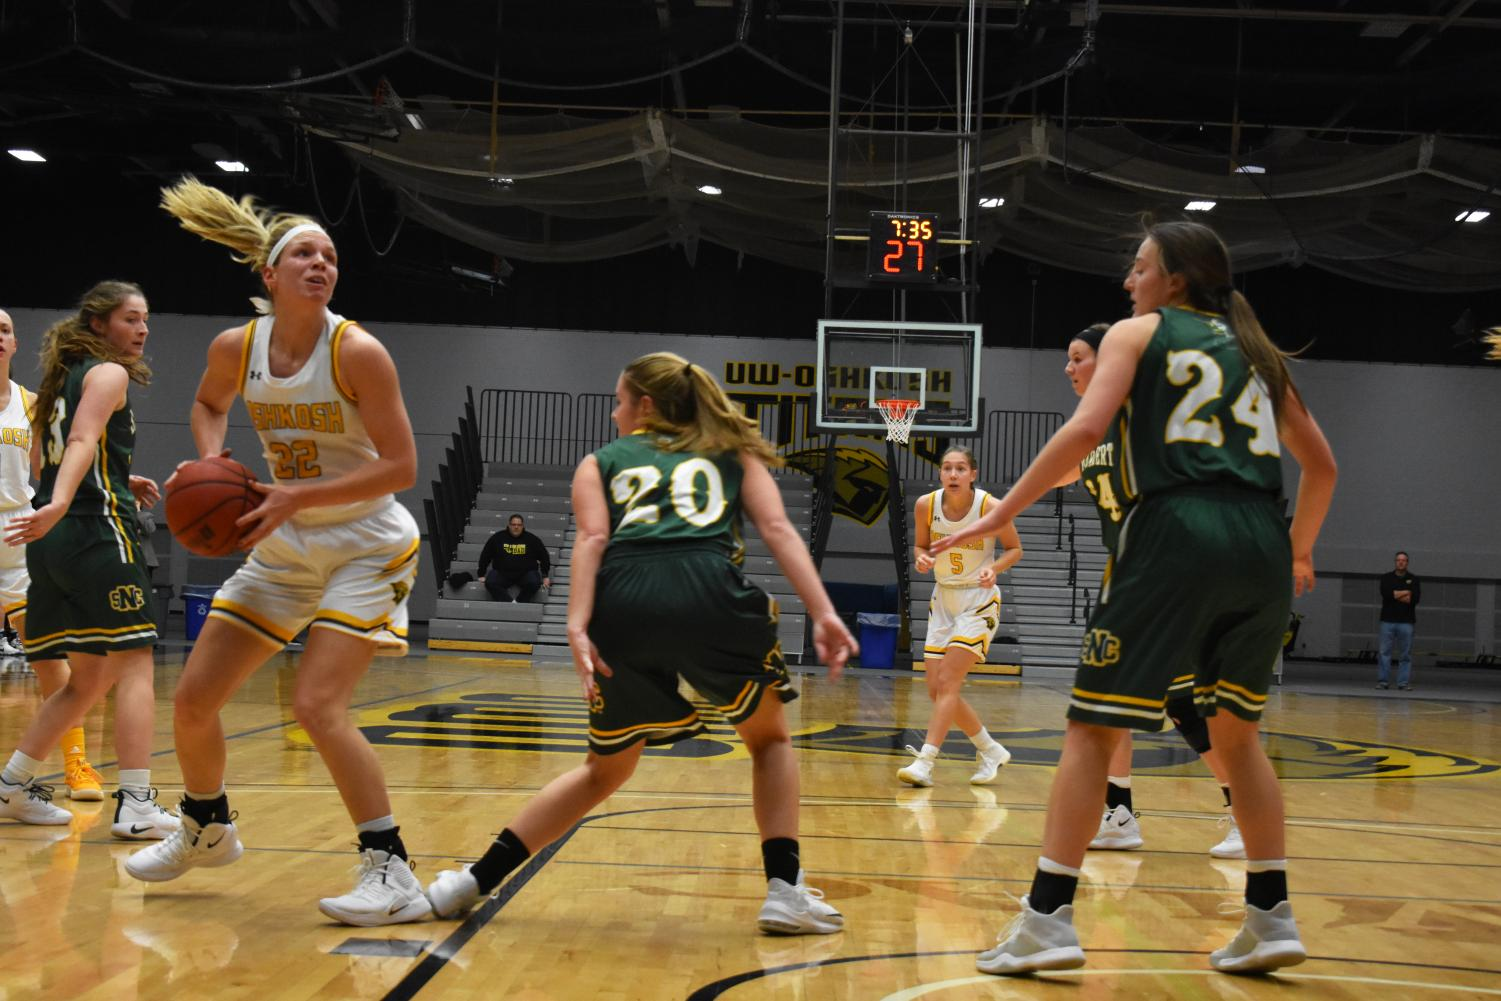 UWO's Melanie Schneider posted a career-high tying 17 points and five rebounds.